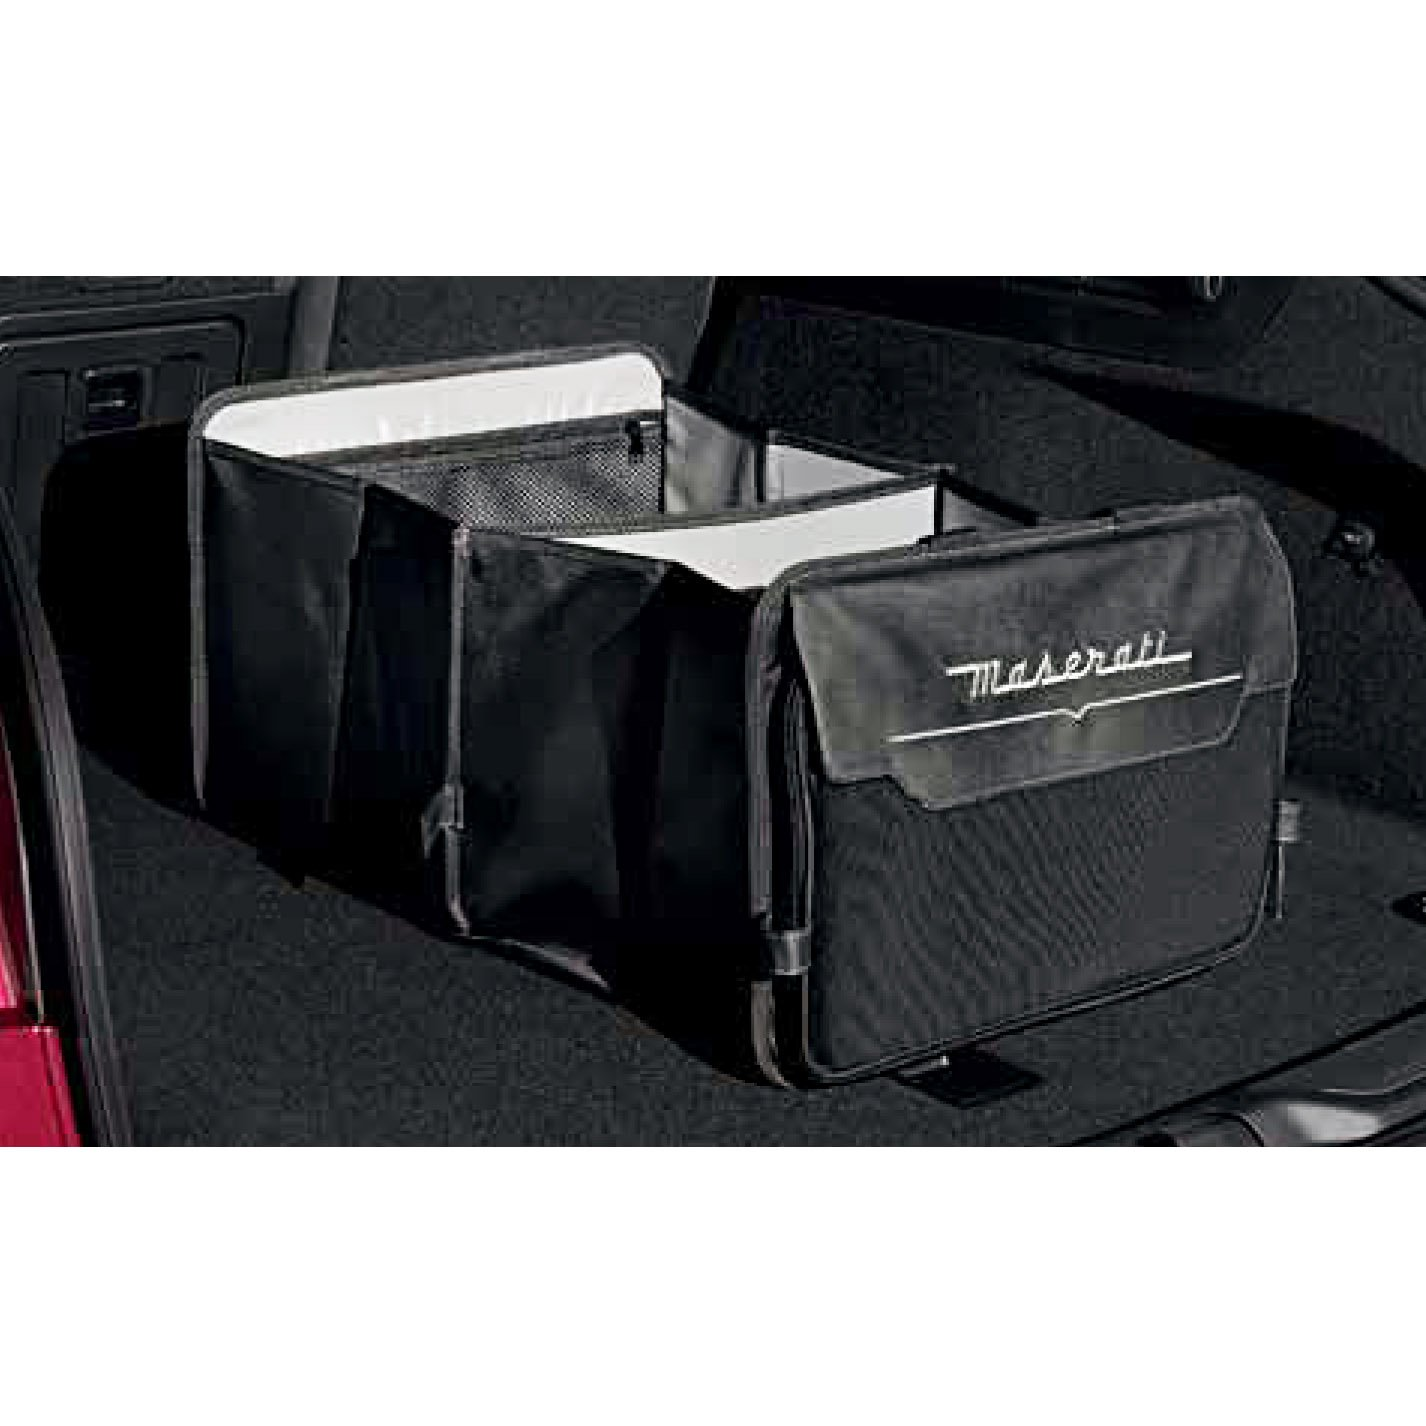 Maserati 940000722 - Luggage Compartment by Maserati